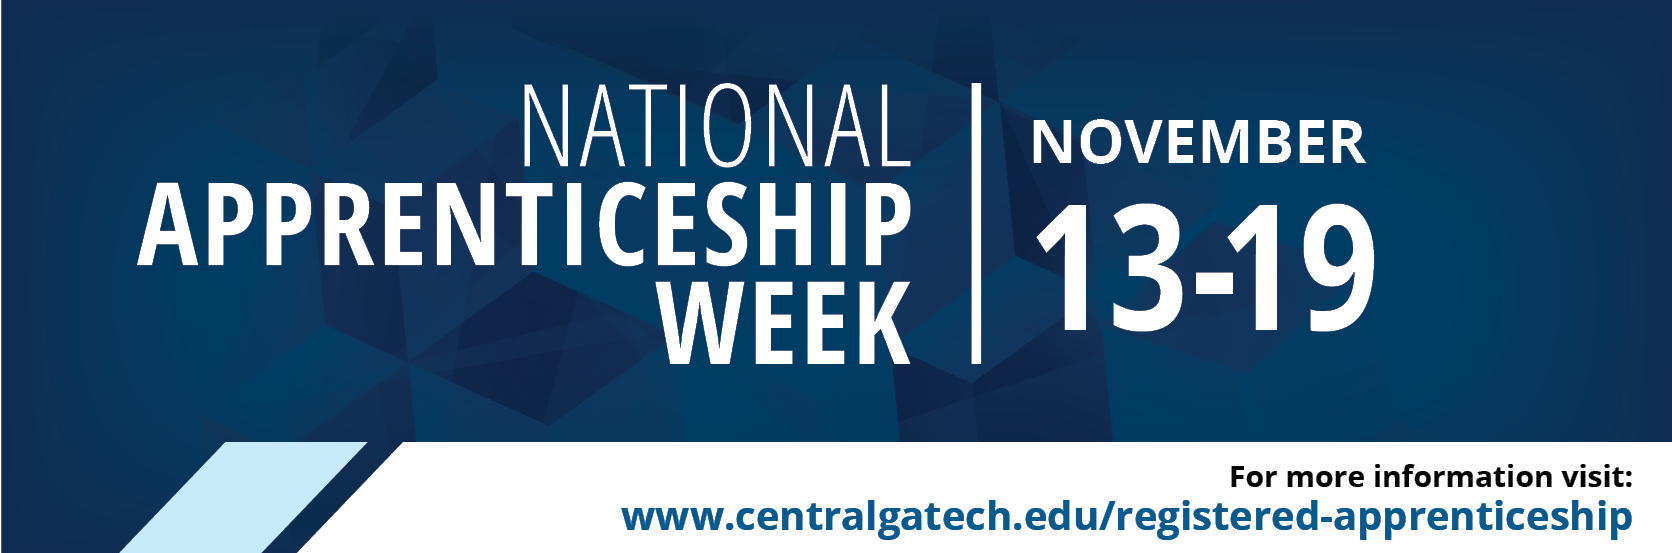 Join CGTC in celebrating National Apprenticship Week